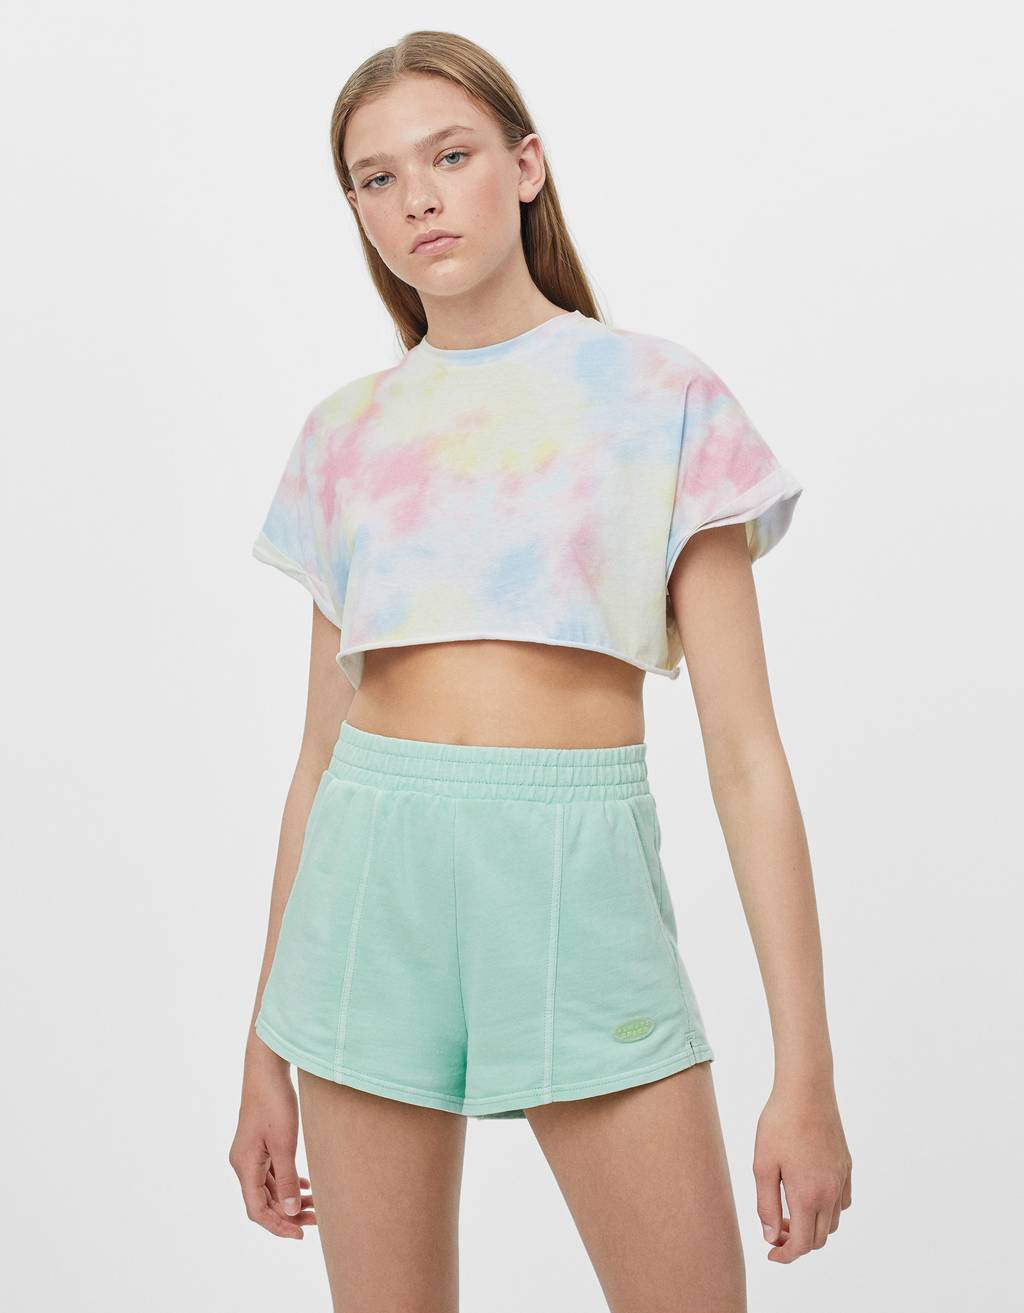 Camiseta super cropped